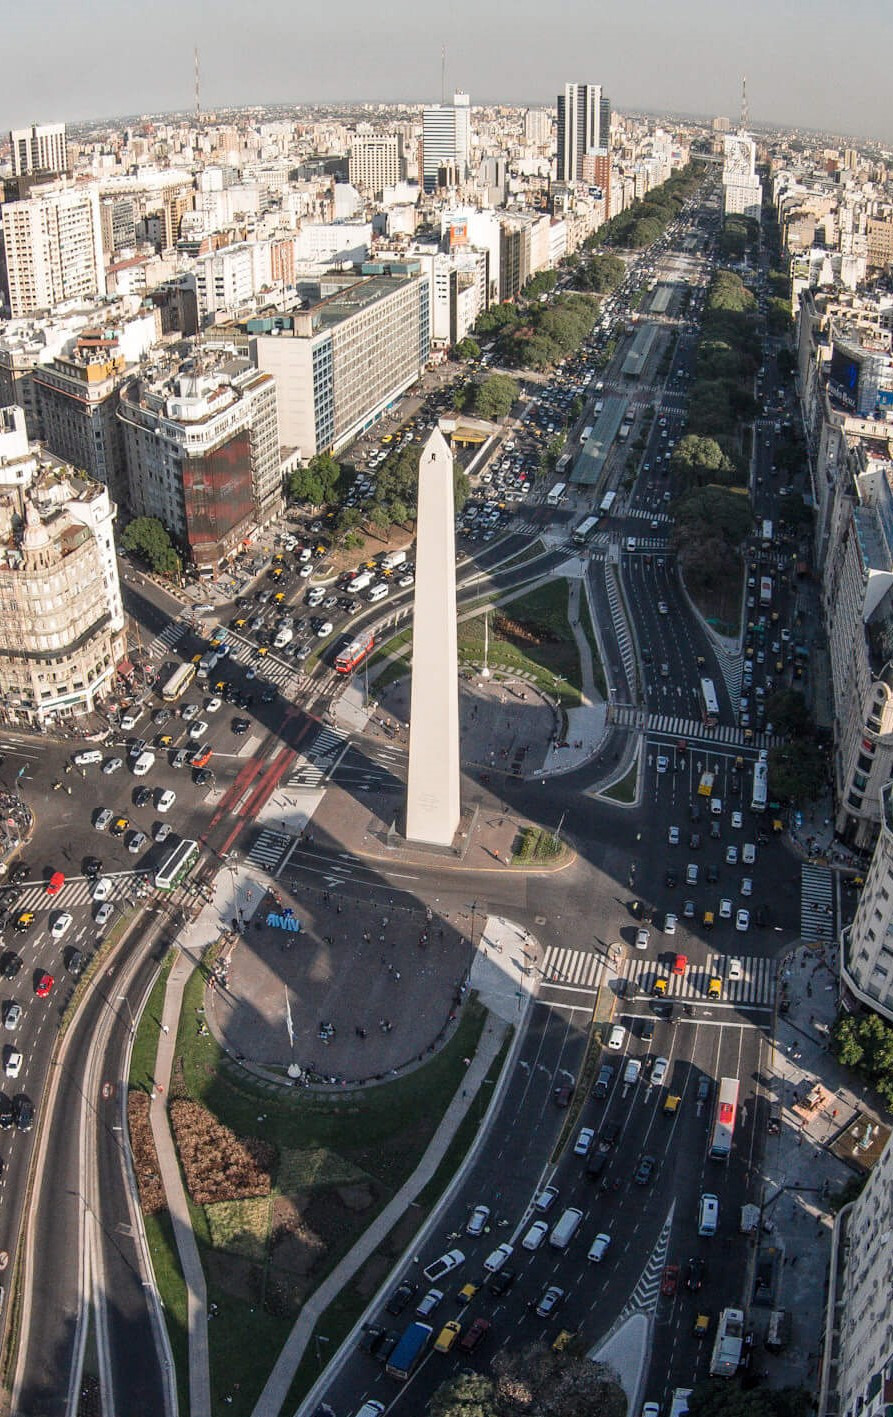 The Opening Ceremony will be held at the iconic Buenos Aires Obelisk on October 6 ©Buenos Aires 2018